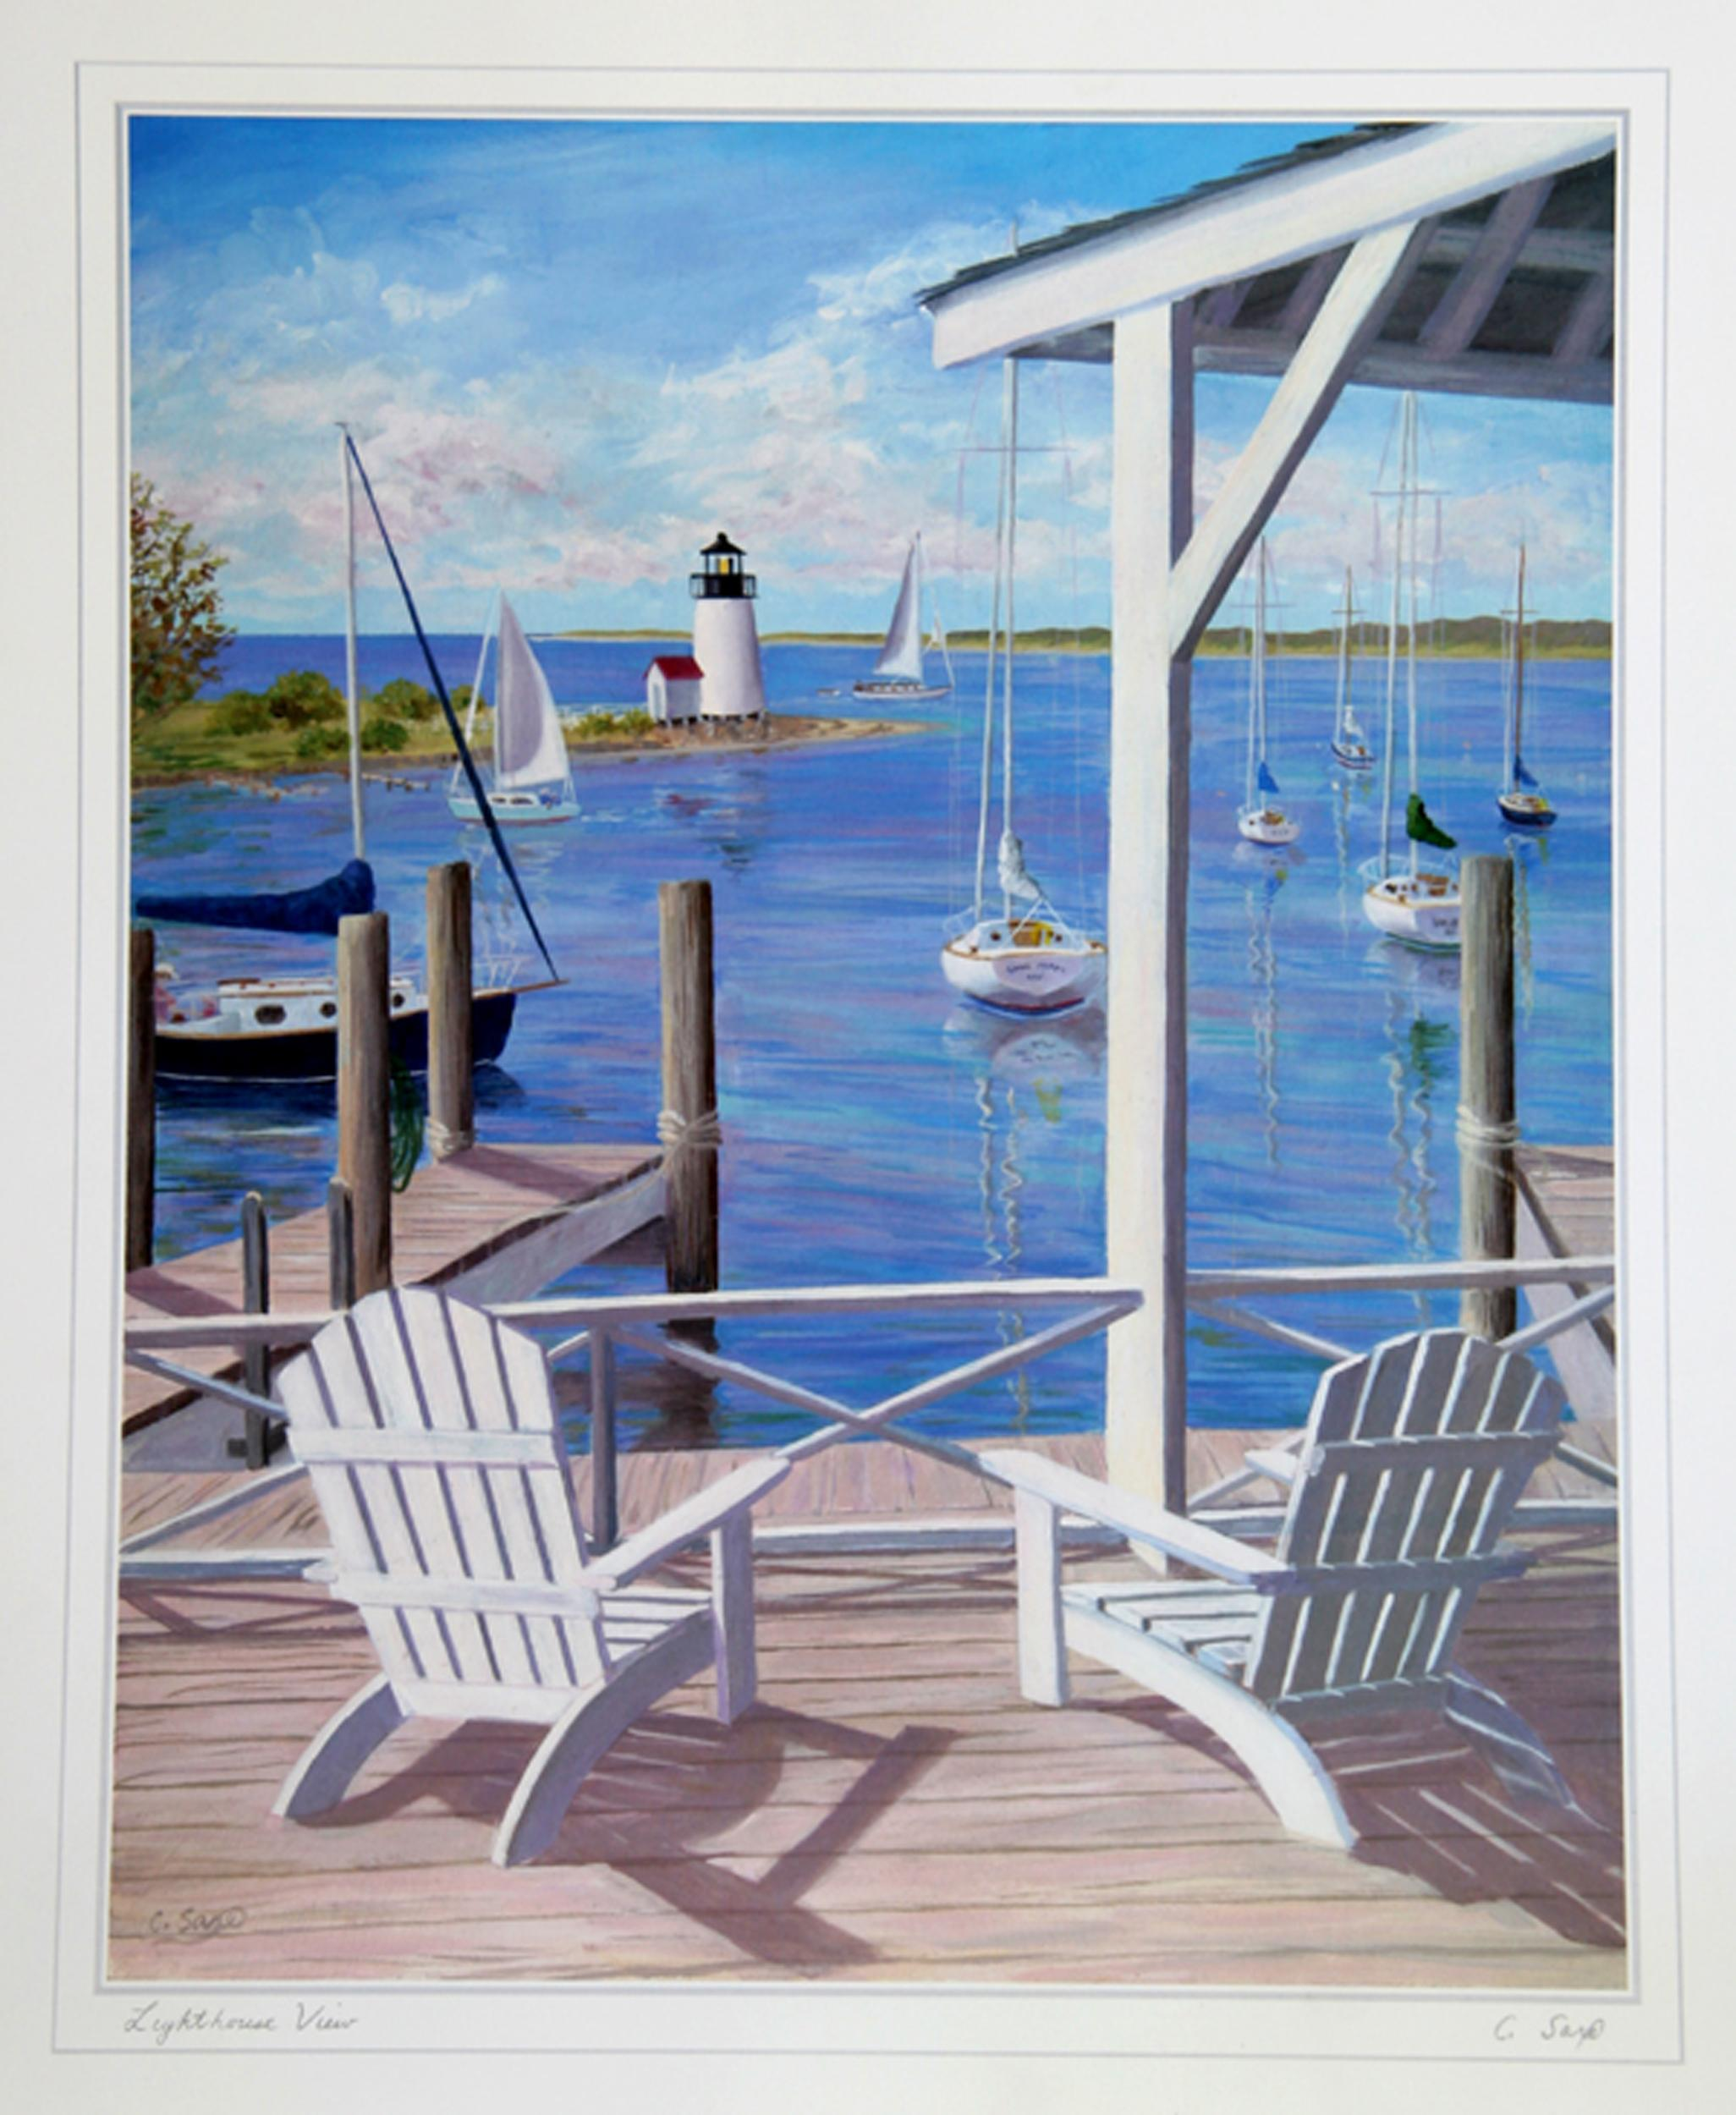 Carol Saxe, Lighthouse View, Poster